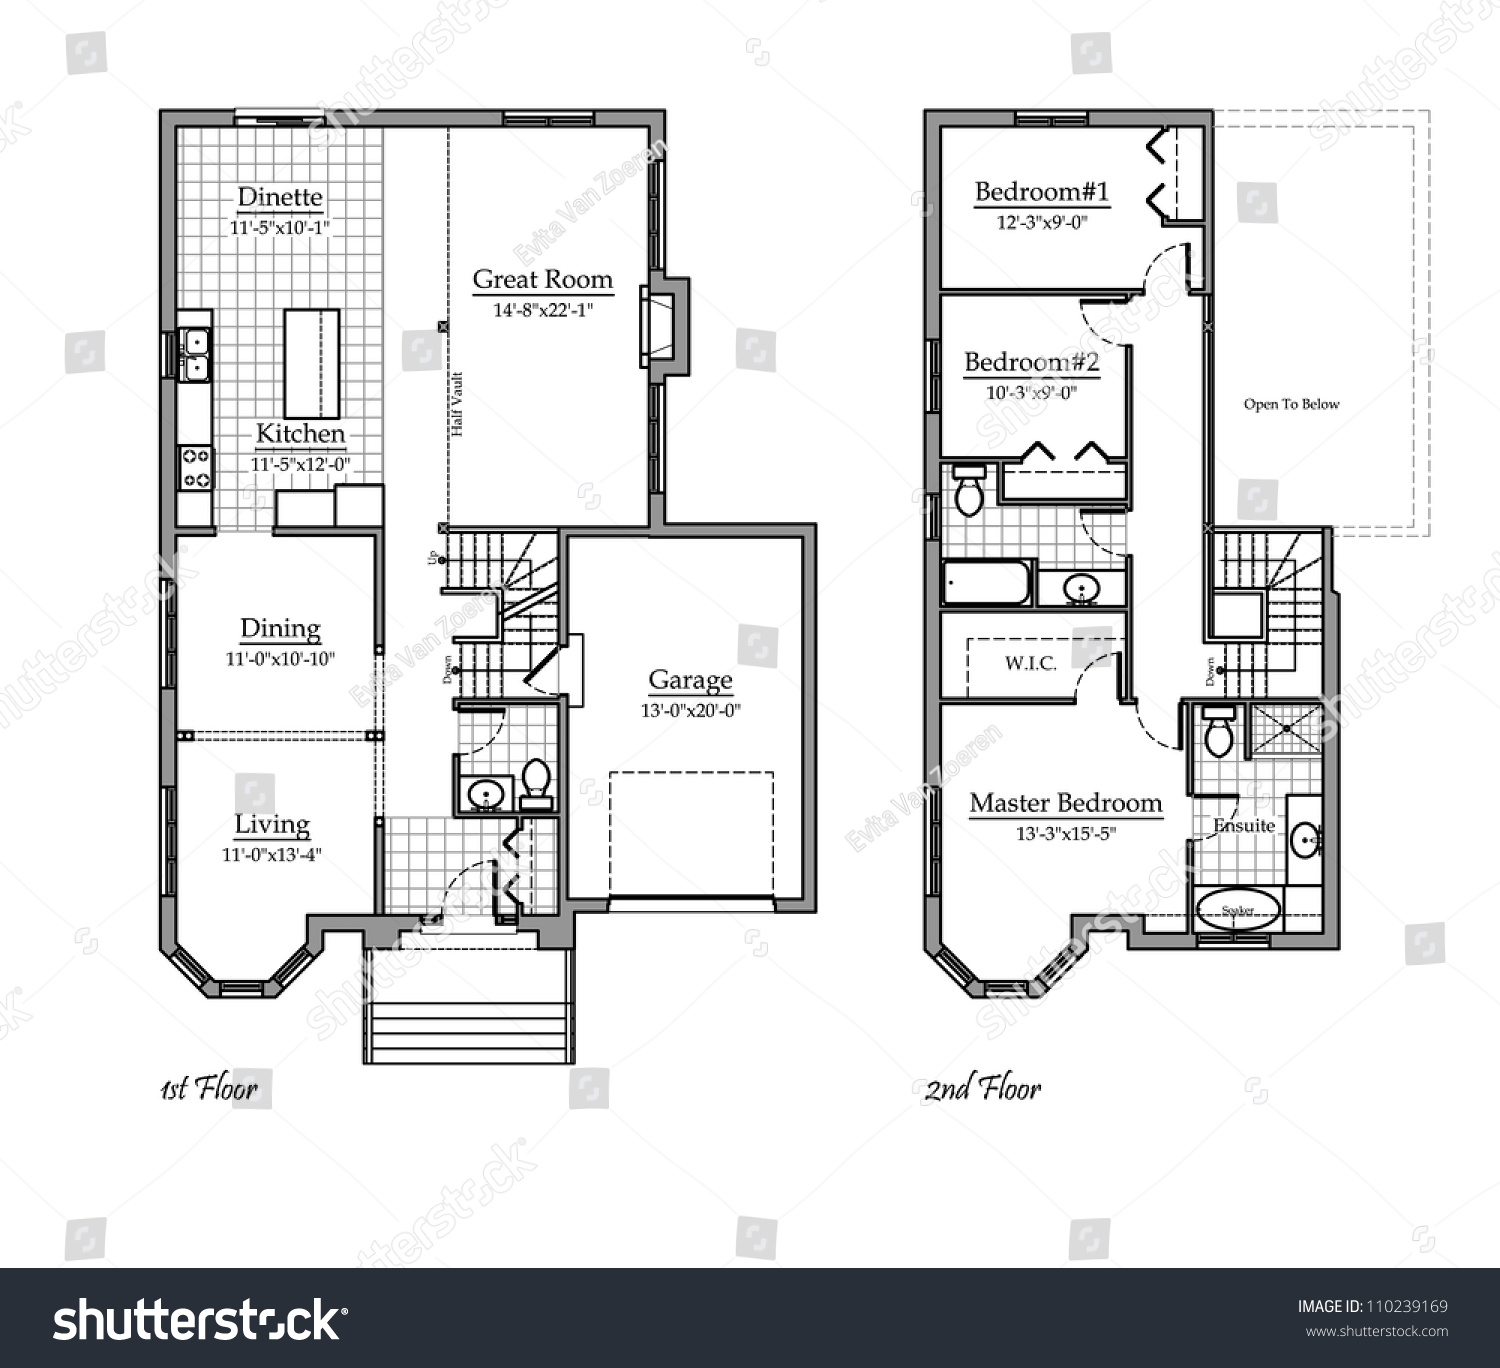 Two storey floor plan with room names stock photo for Stock floor plans